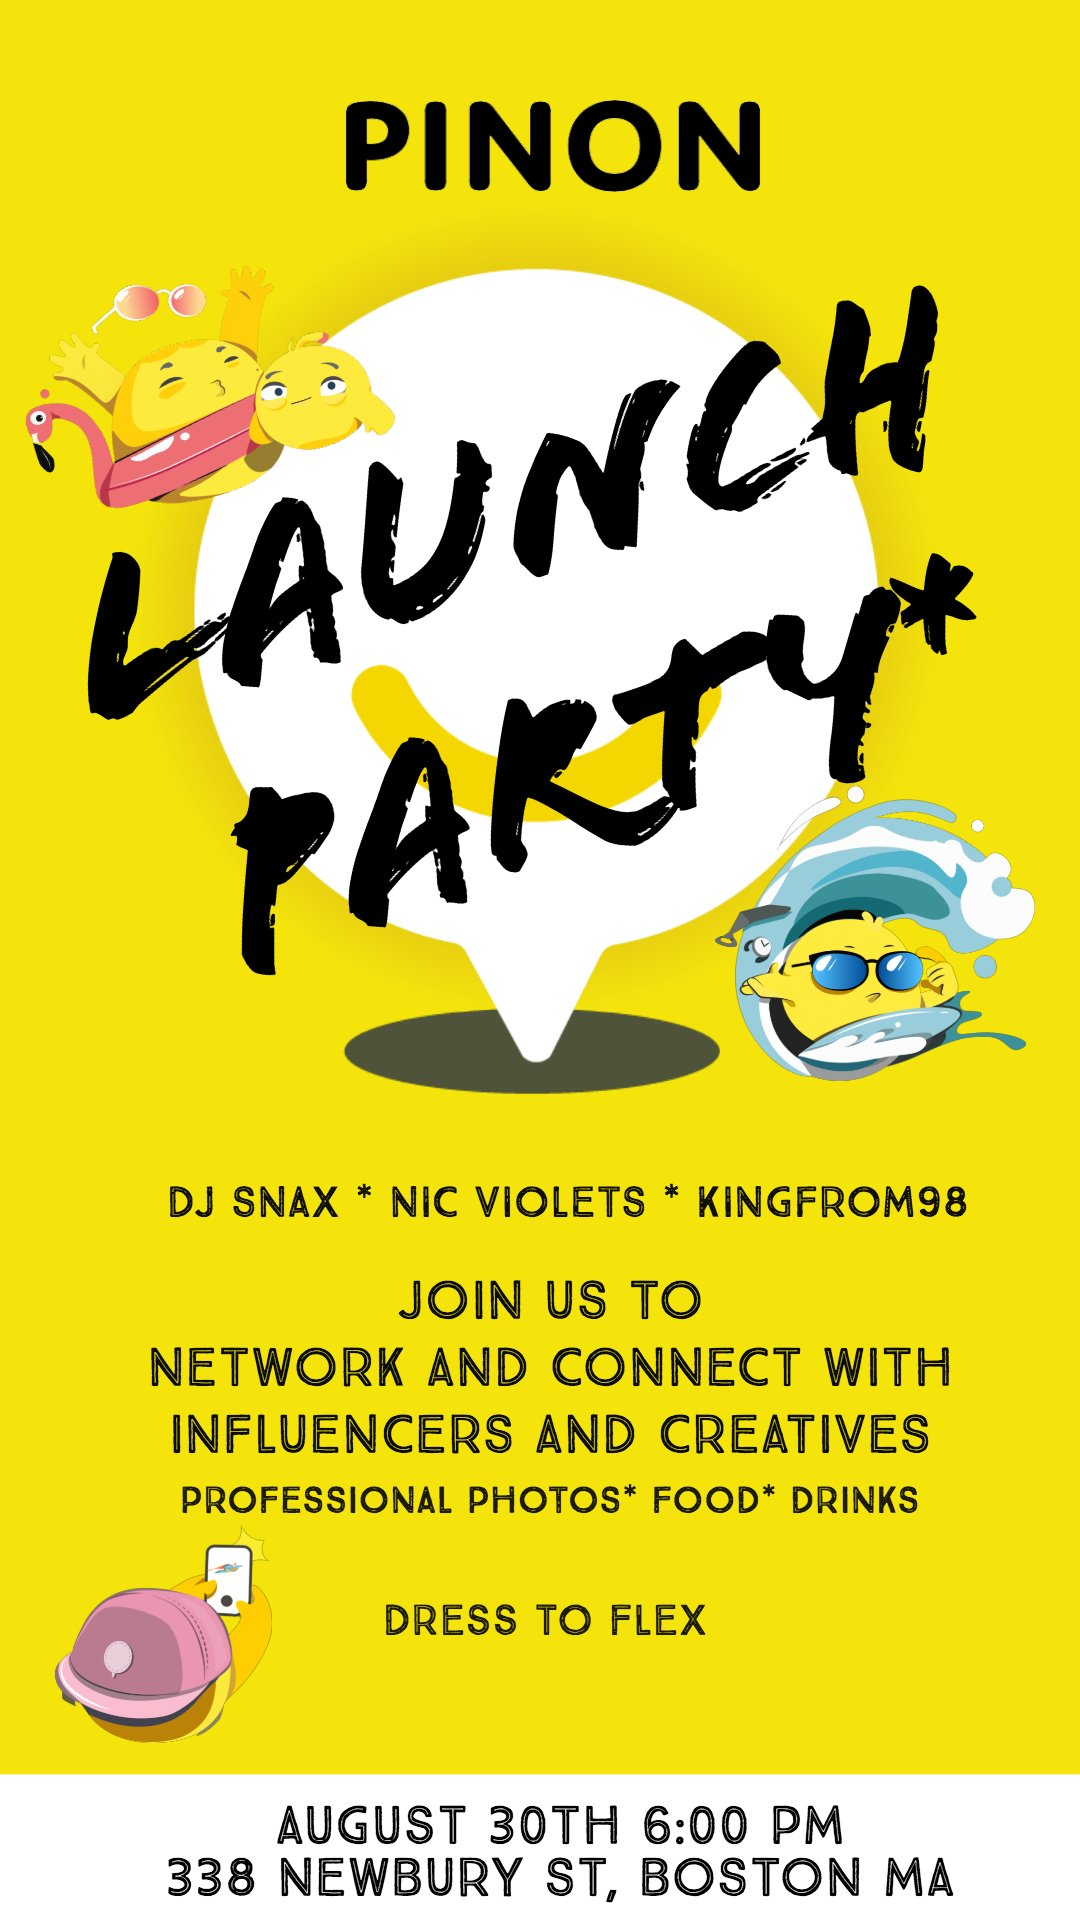 Creative Success - I lead creation direction, including writing and designing the event flyer, overseeing promotional video creation, and leading the interior design of the event space. The flyer was distributed to more than 300 influencers ranging in size from 10K to 600K followers.I acquired the venue booked notable Boston talent: DJ Snax, nic violets and Kingfrom98.